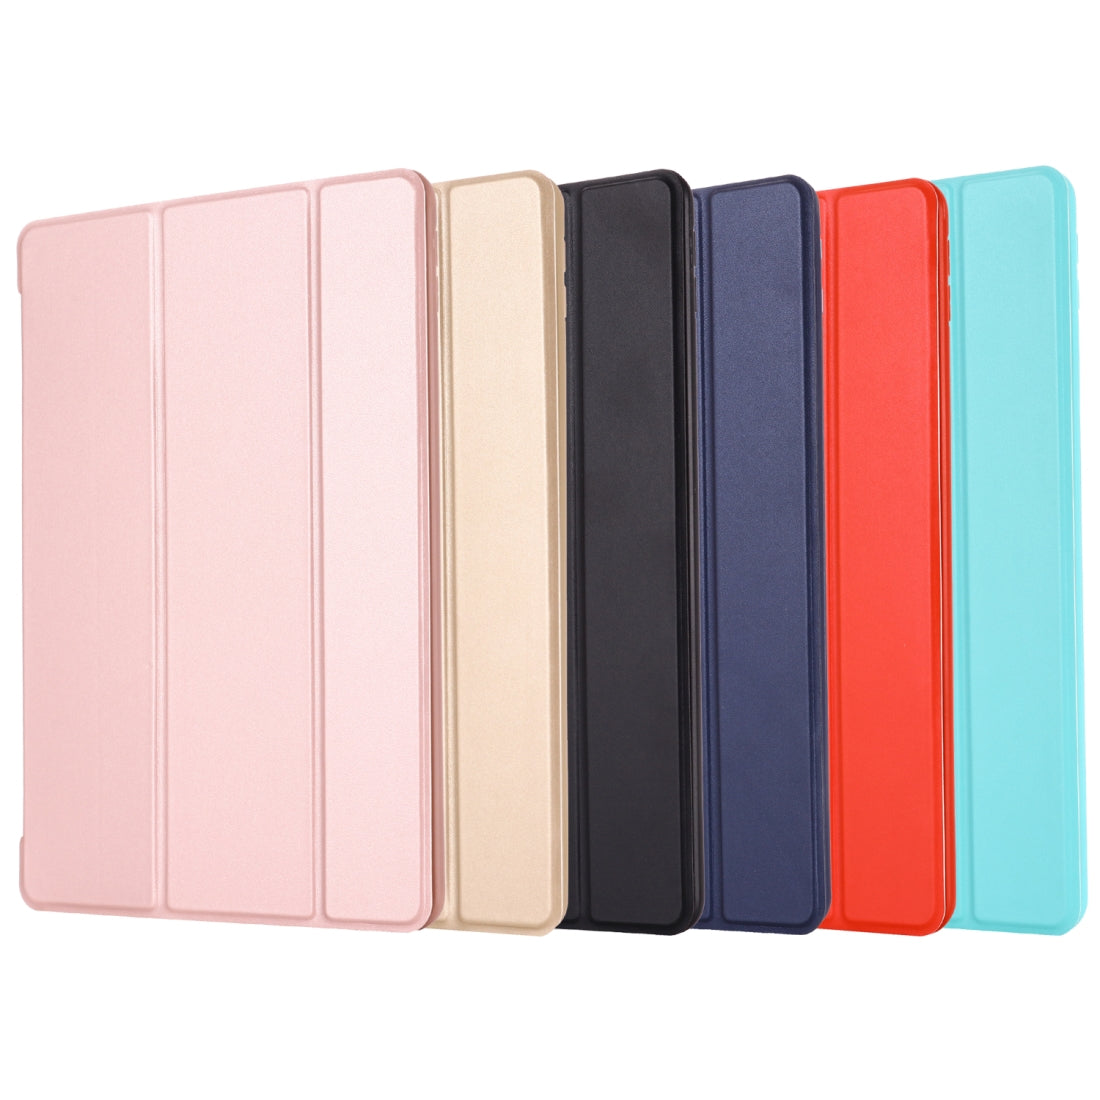 For iPad 10.2 inch GEBEI Shockproof Horizontal Flip Leather Case with Three-folding Holder(Red)